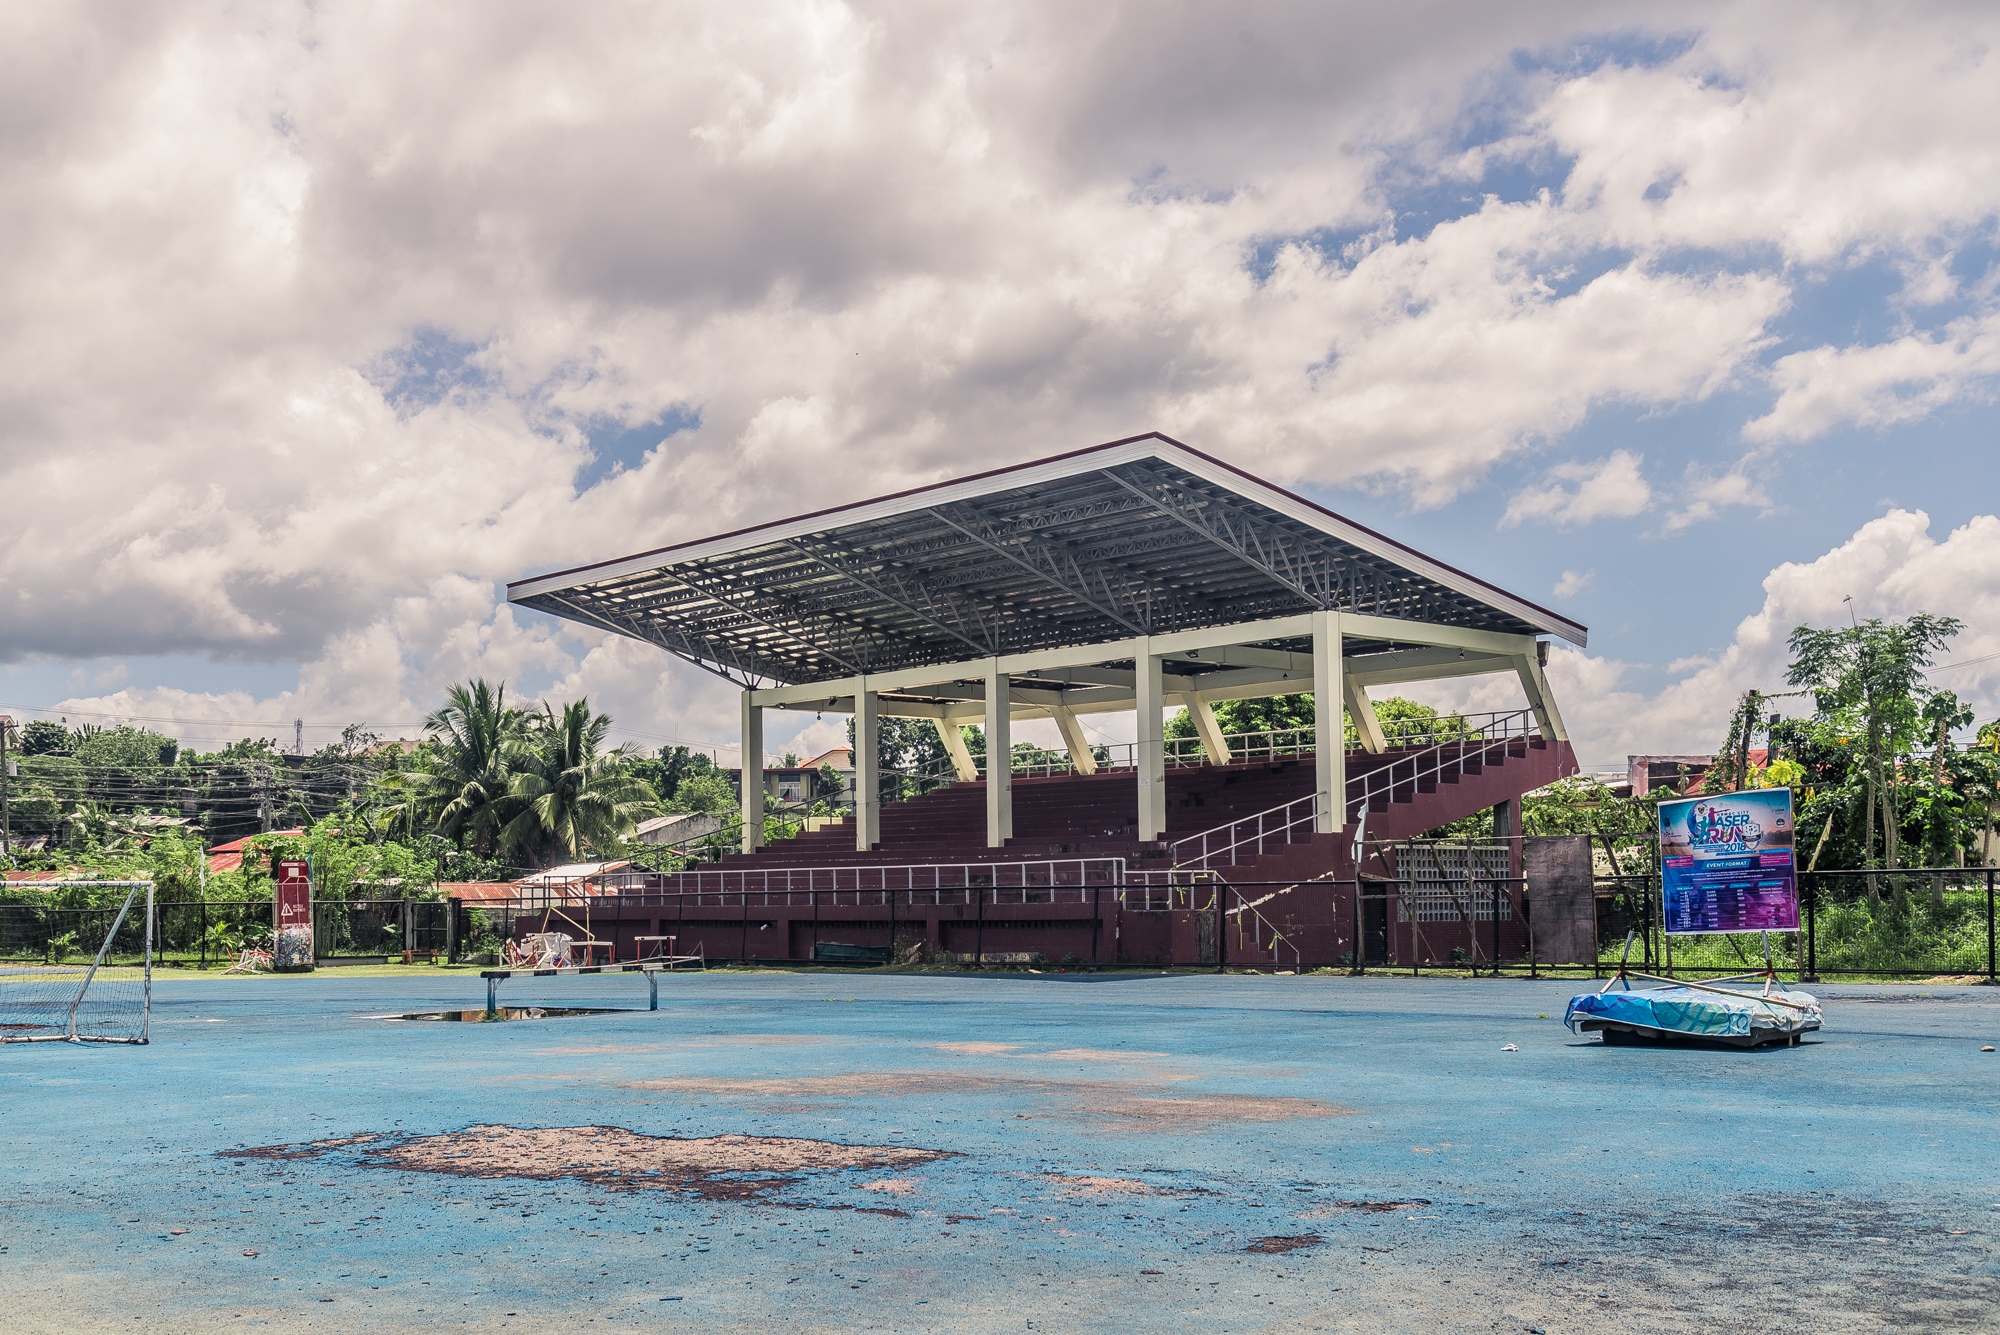 Ormoc City's current Grand Stand